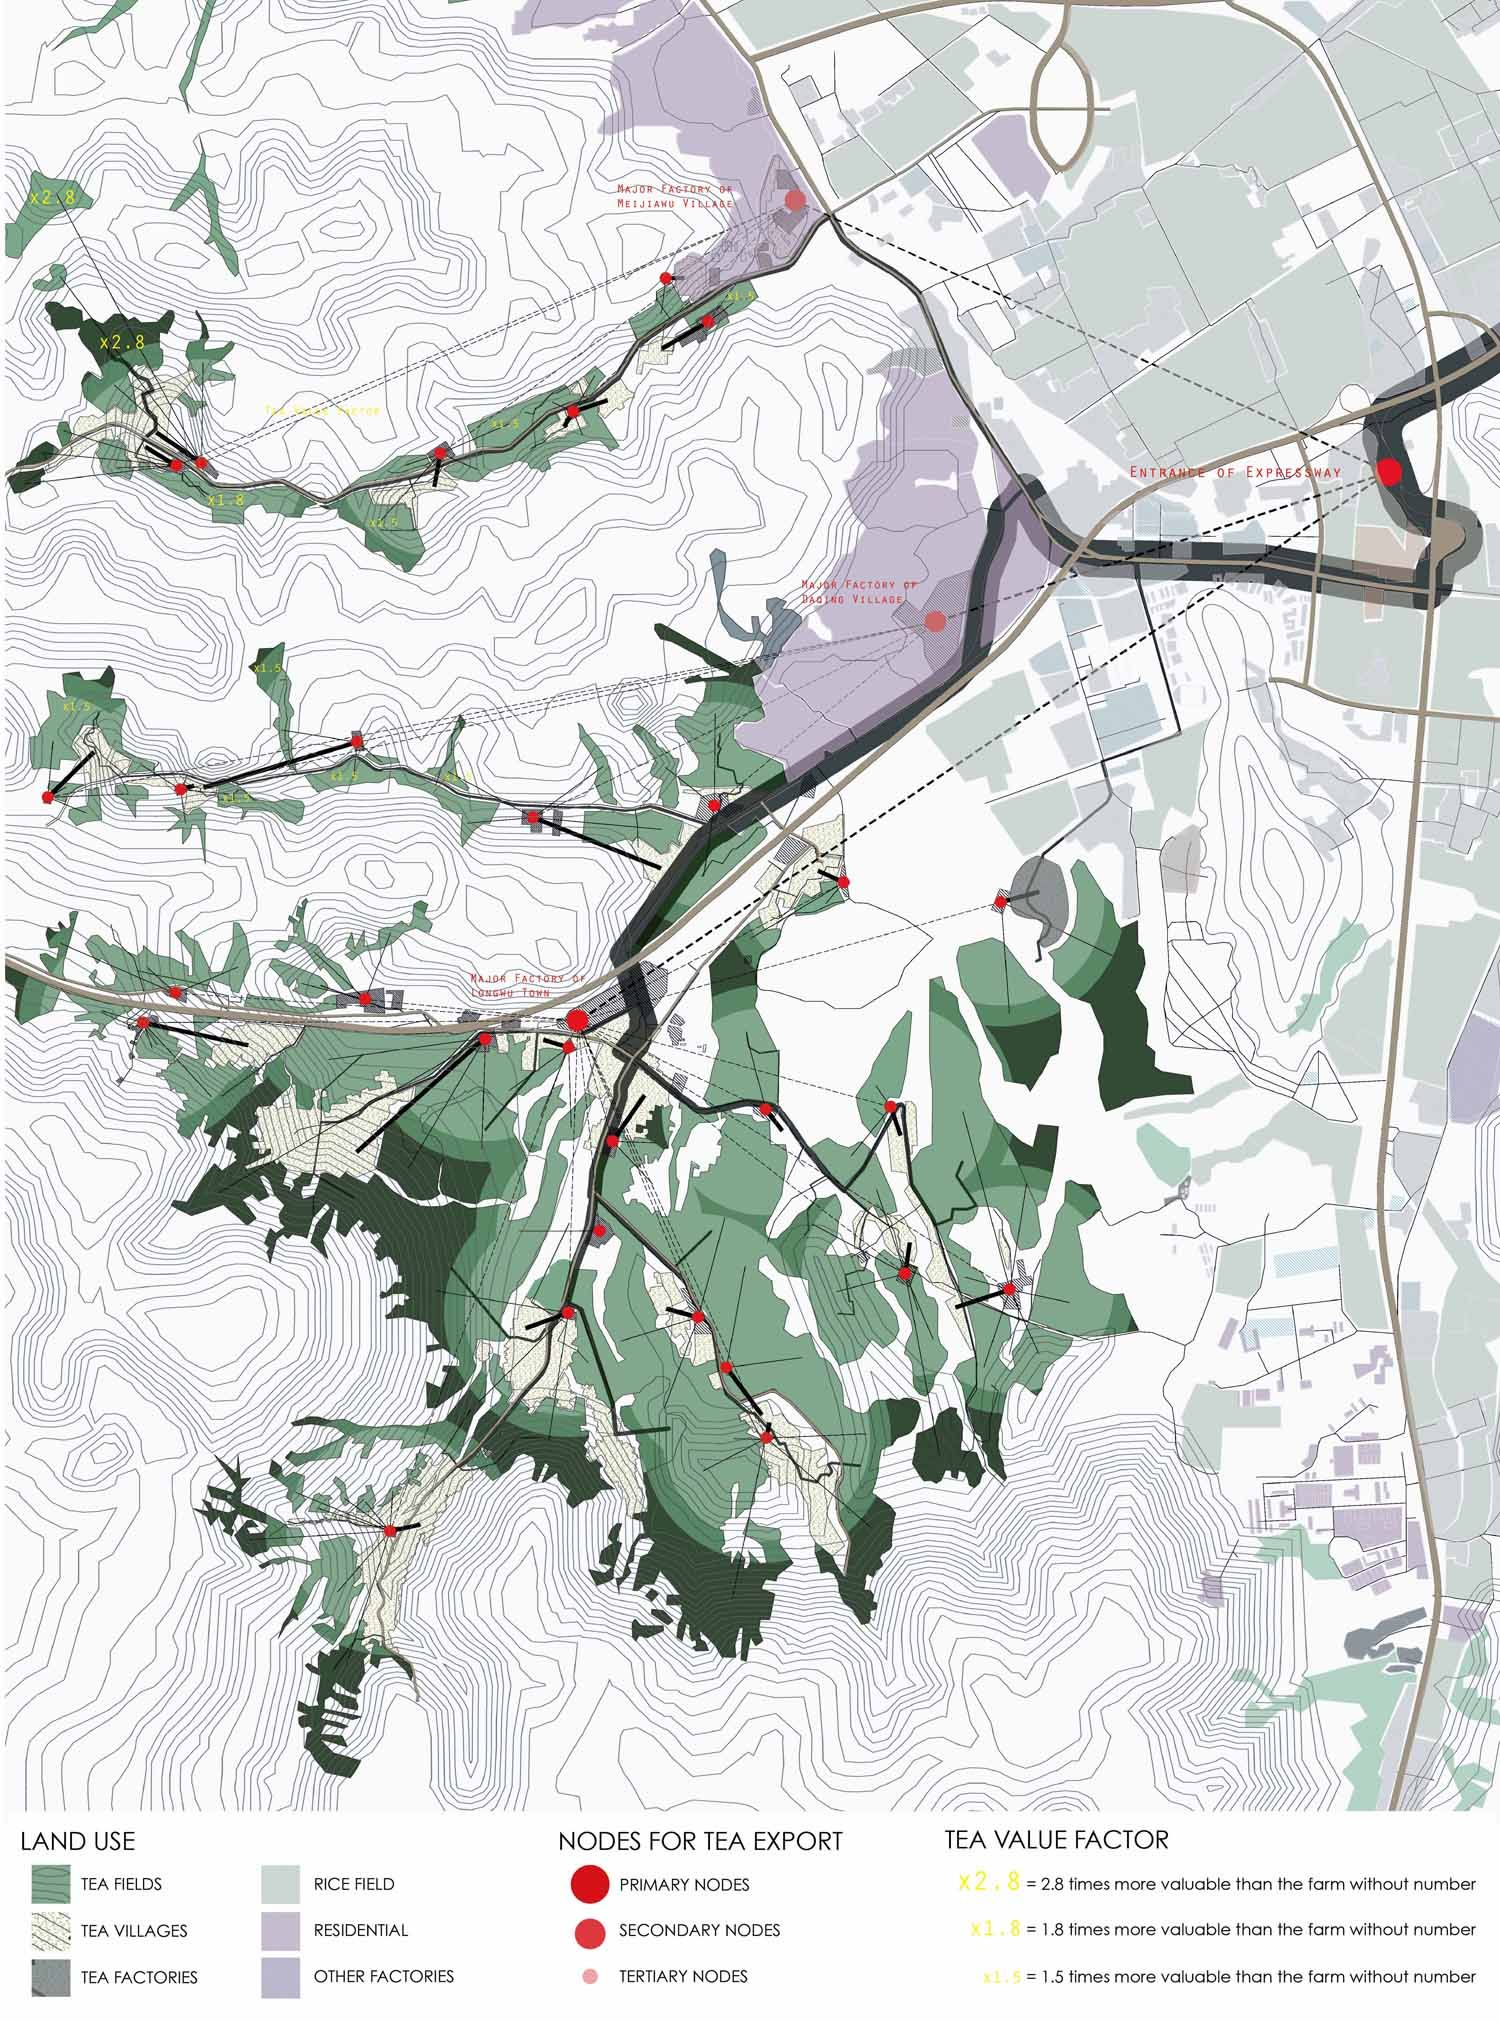 AA School Of Architecture Projects Review 2011 - Landscape Urbanism - Zijiang District | Graph ...